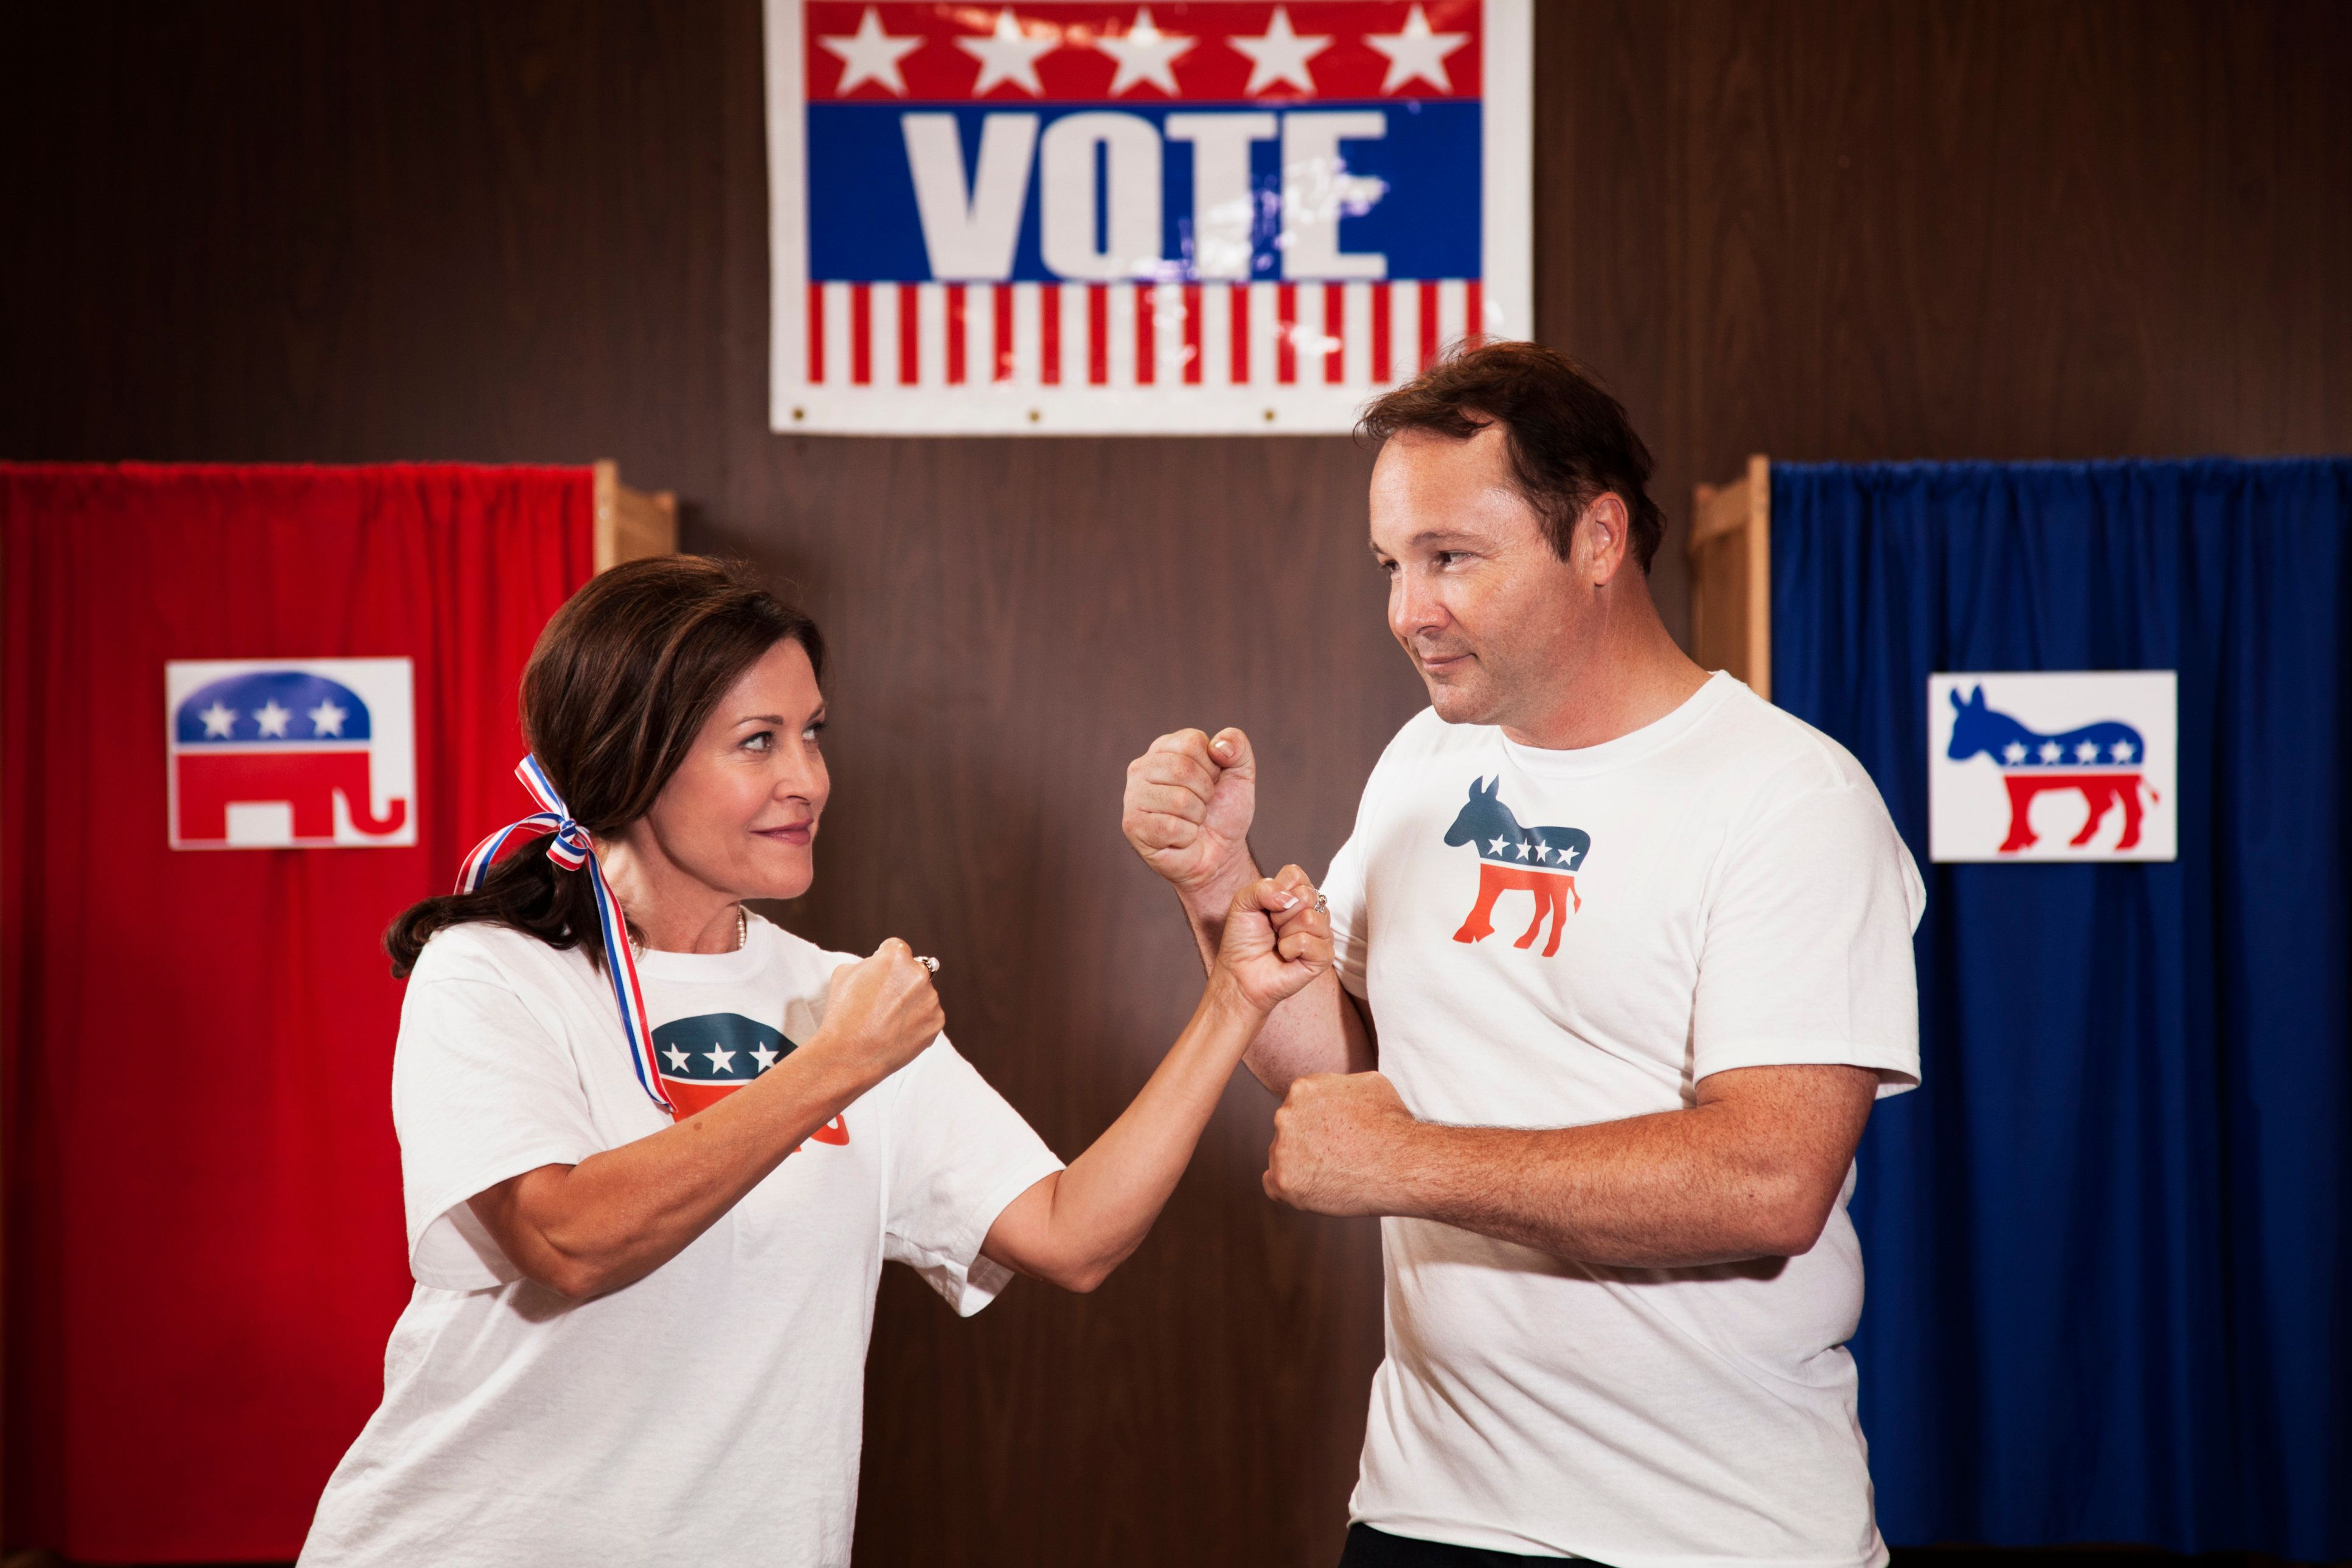 Voting couple fighting at polling place